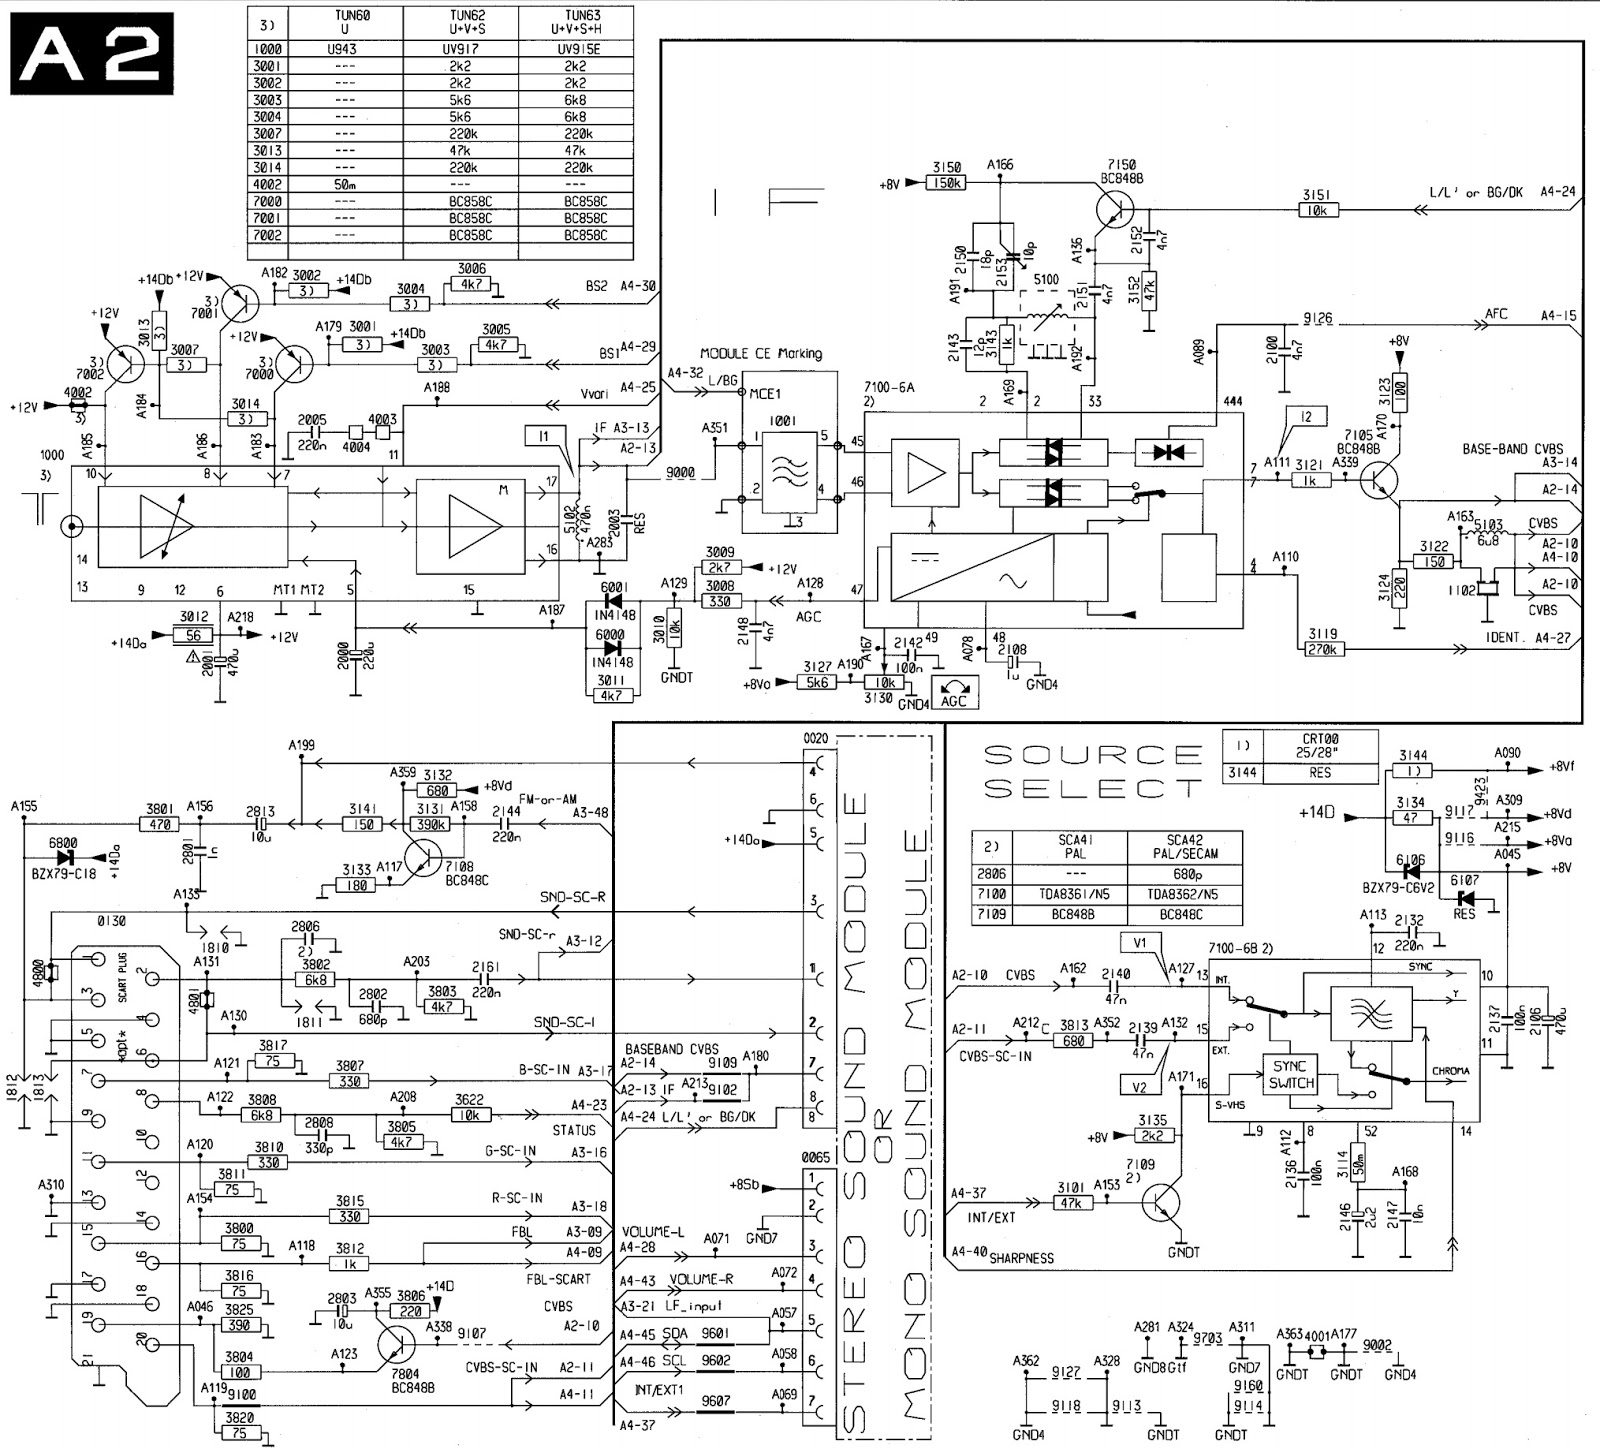 medium resolution of philips 286ns 05 chassis comet circuit diagram full schematic circuit diagramfull click on the schematic to magnify